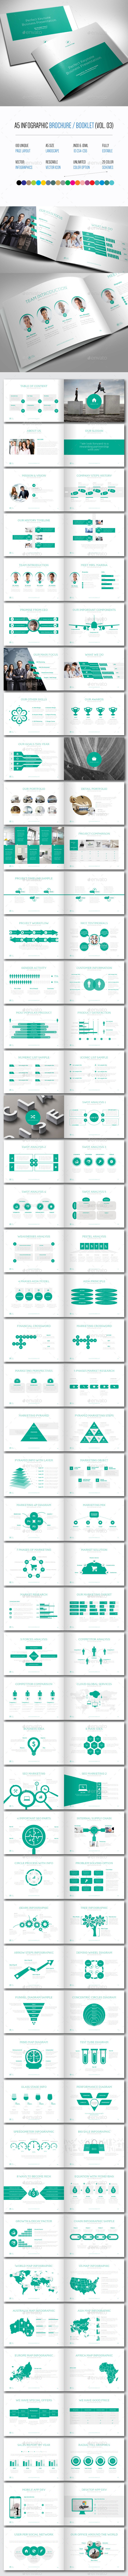 GraphicRiver Infographic Brochure Booklet Vol 03 9962296